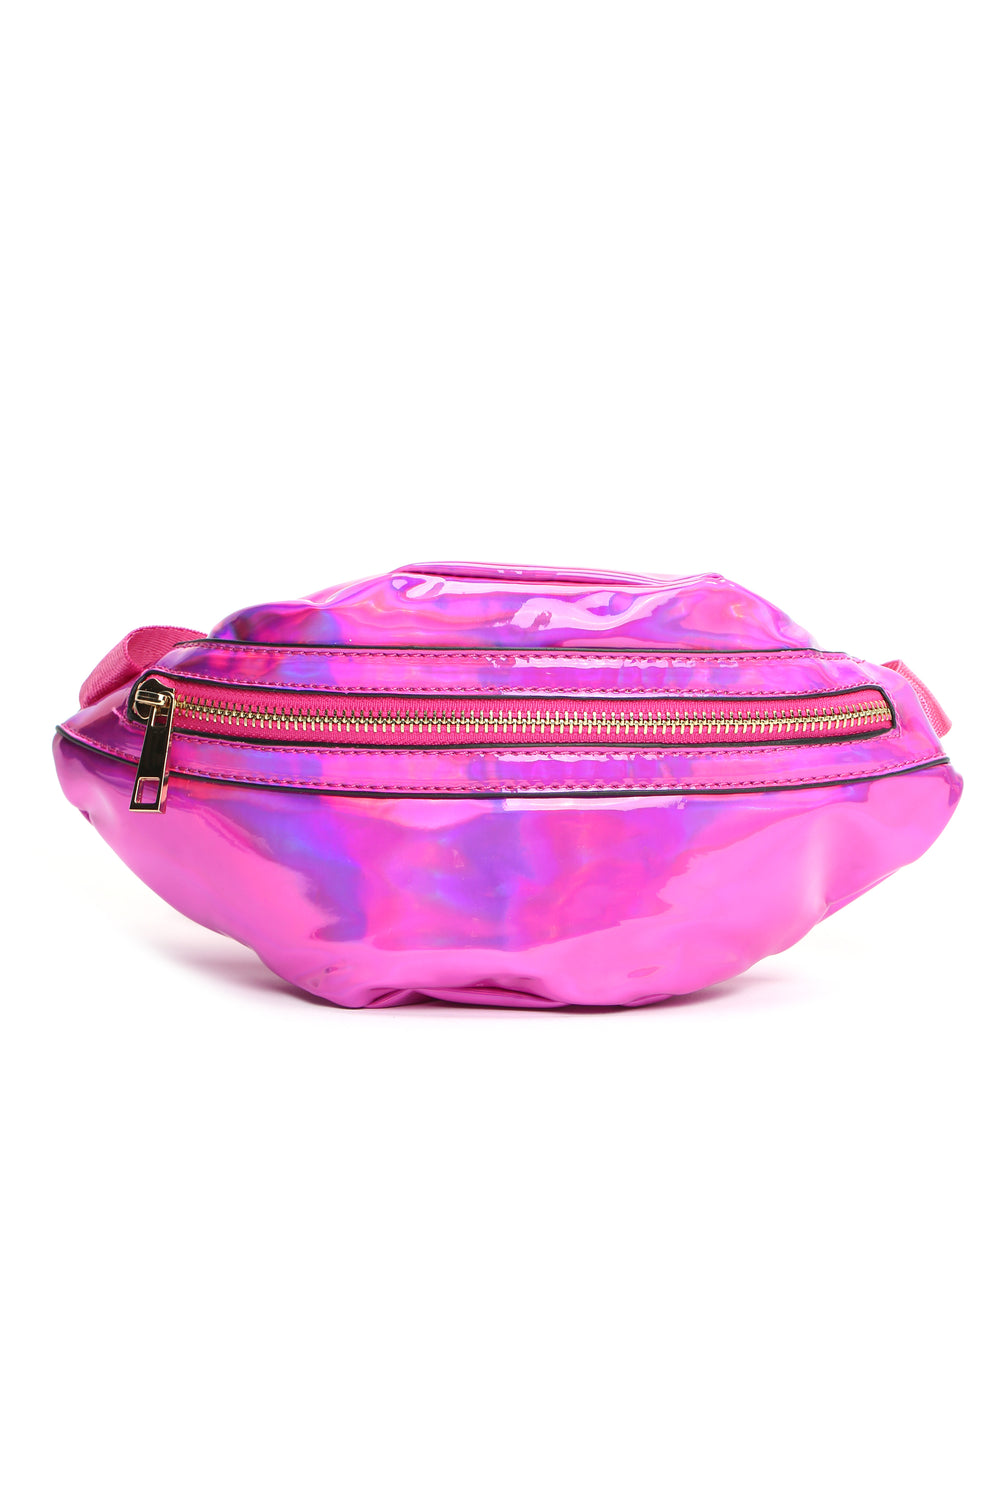 Hey Holo What's Up Fanny Pack - Fuchsia